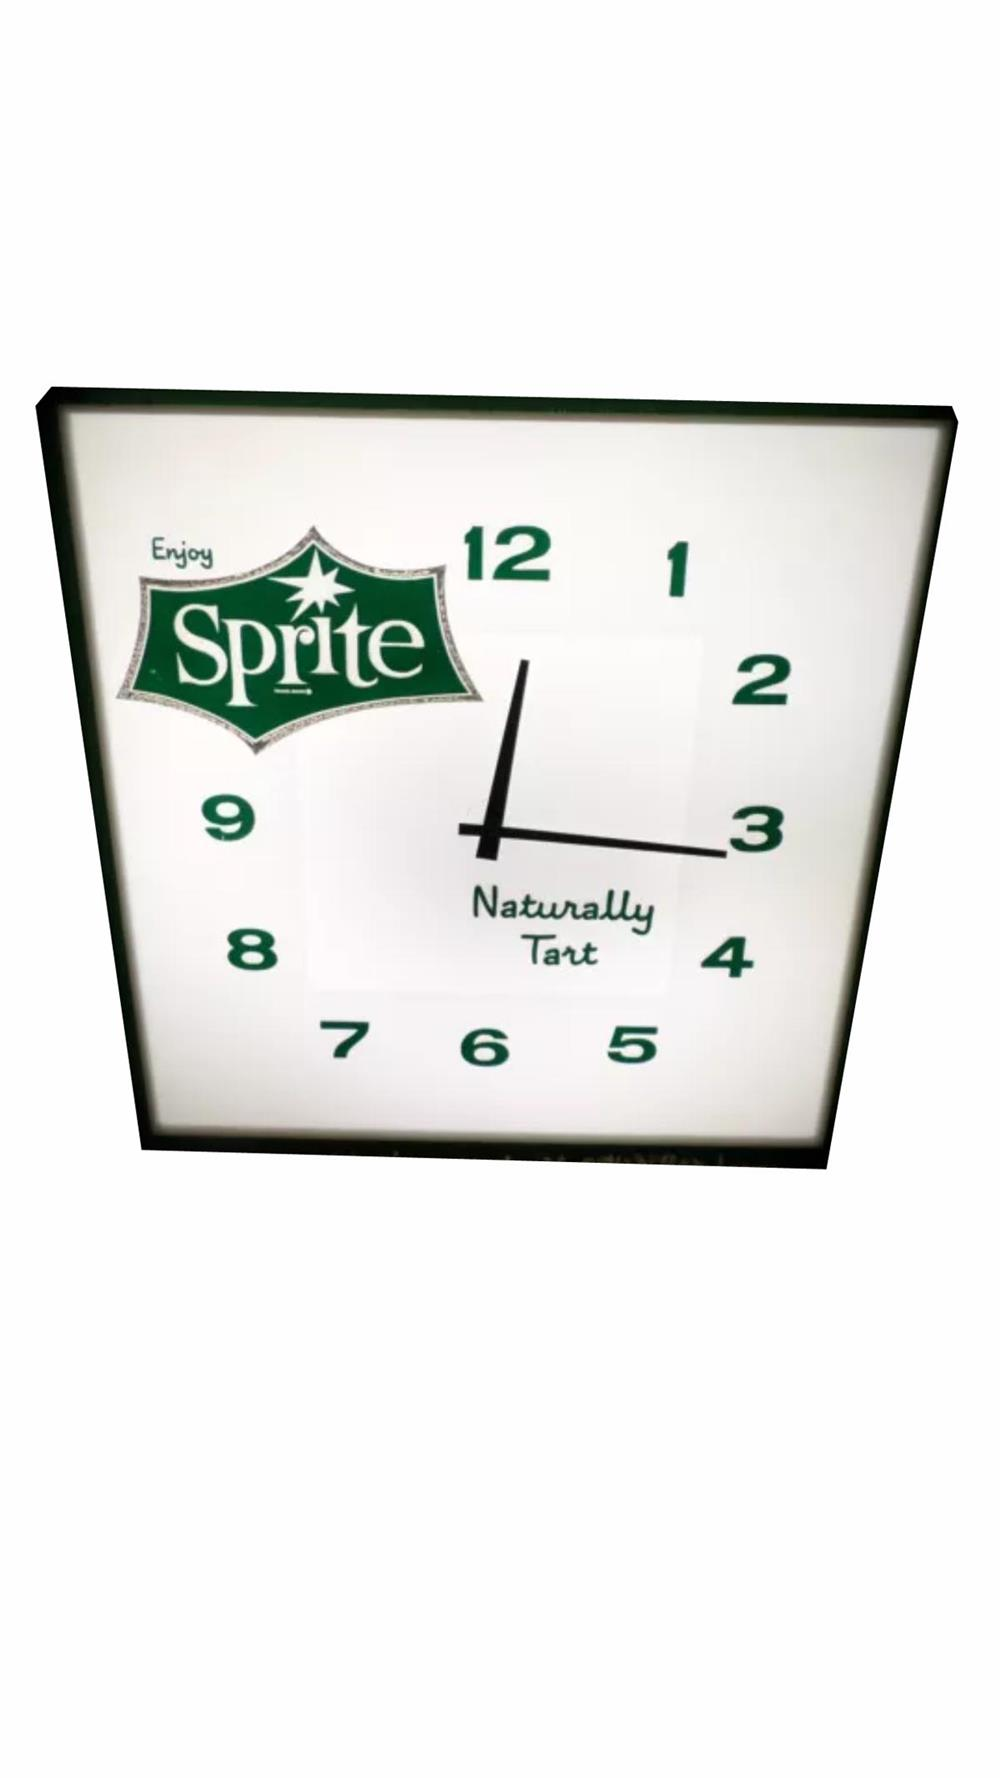 Impressive Sprite Soda light-up soda fountain clock. Lights and works well. - Front 3/4 - 186417